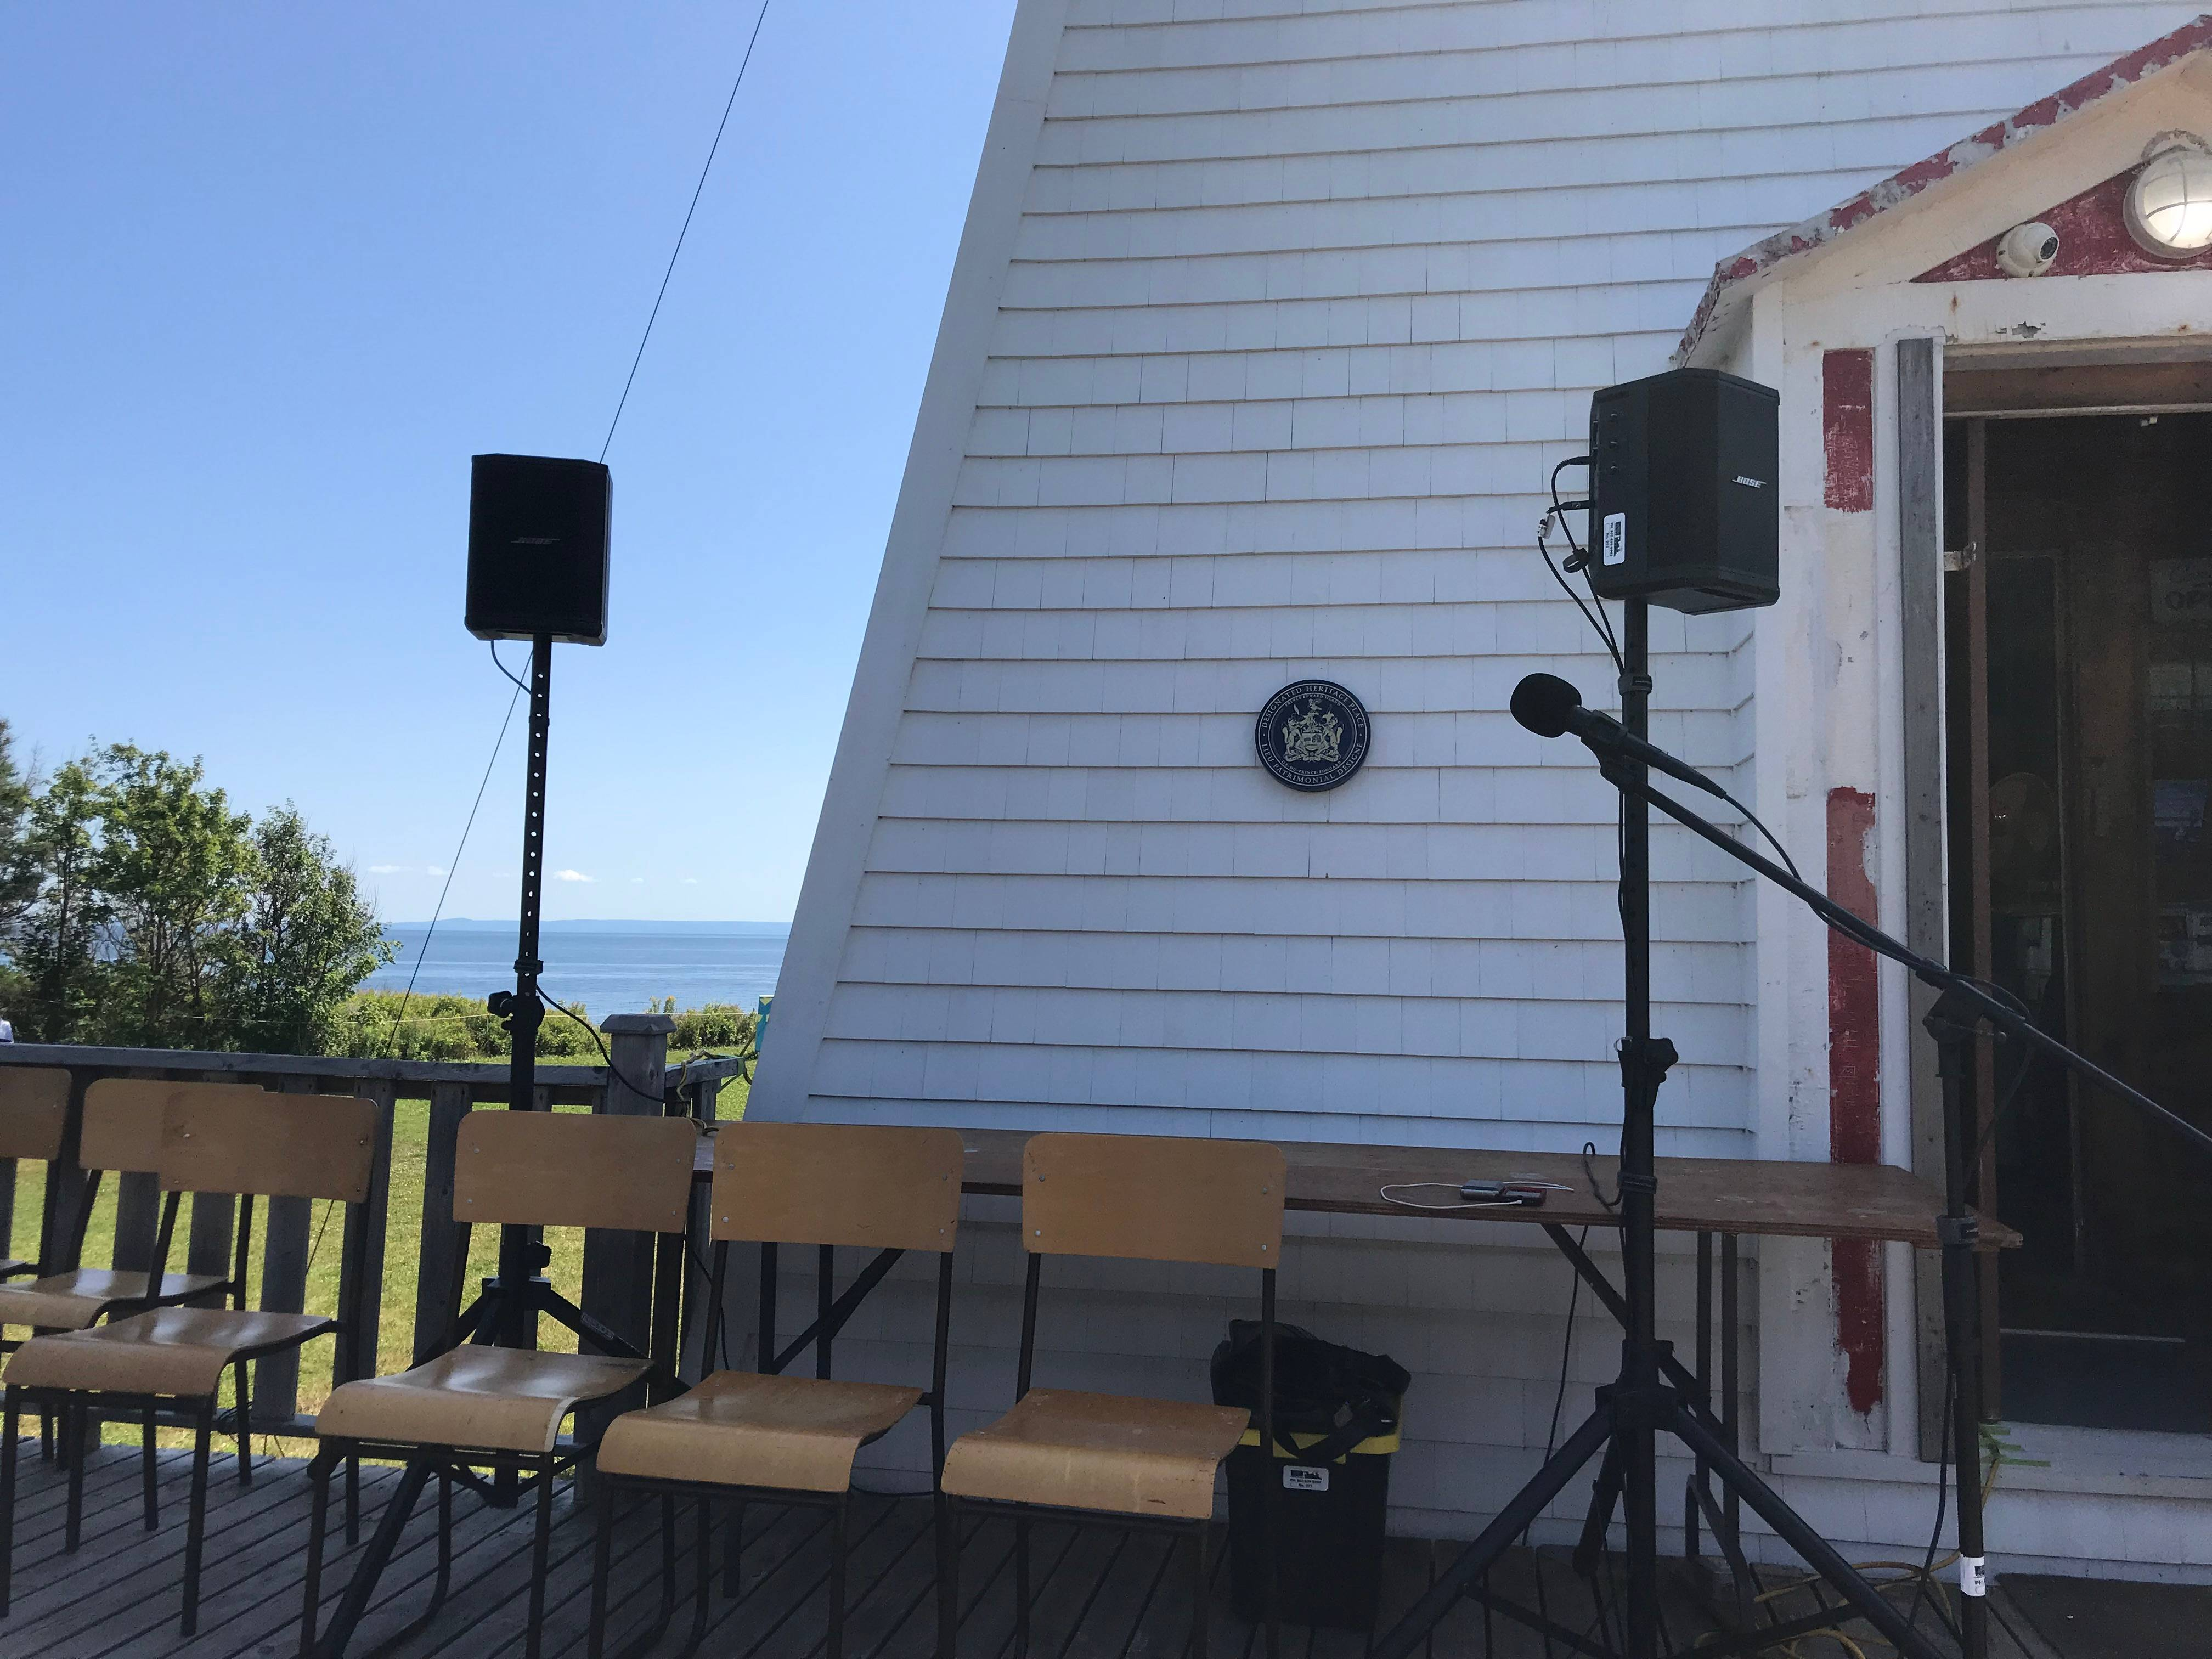 Outdoor Event with Bose S1 Pro